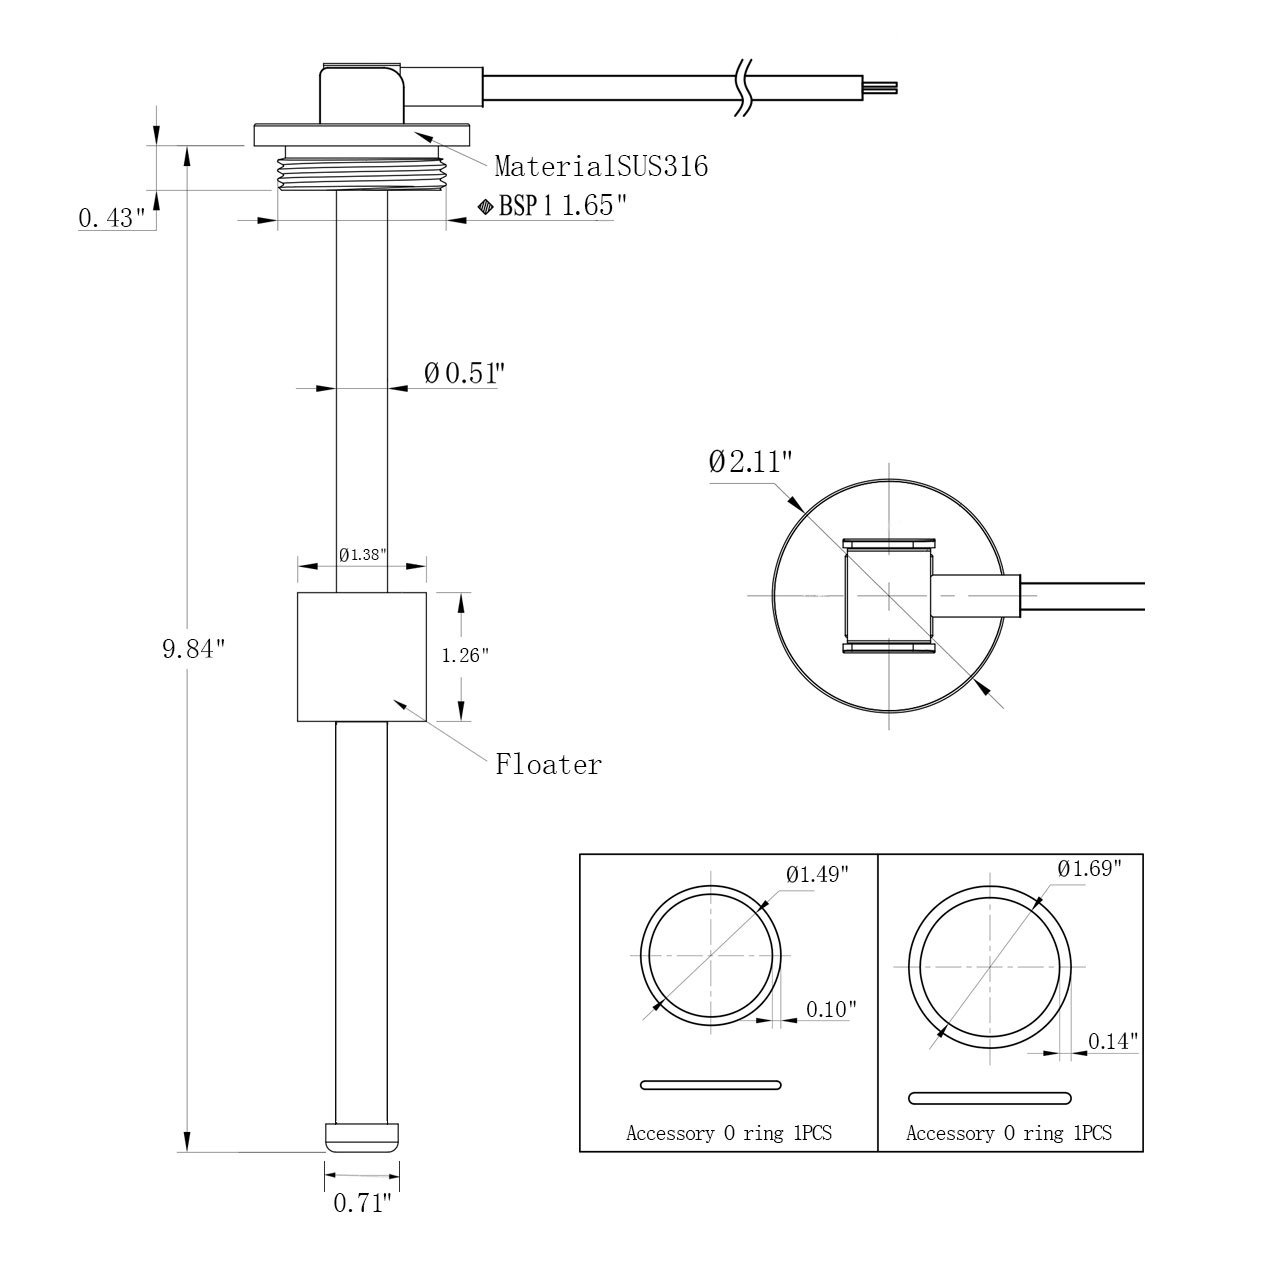 33 240 Ohm 95 Fuel And Water Tank Level Sensor 98 250 Mm Genuine Vdo Gas Gauge Wiring Diagram Marine Sports Outdoors